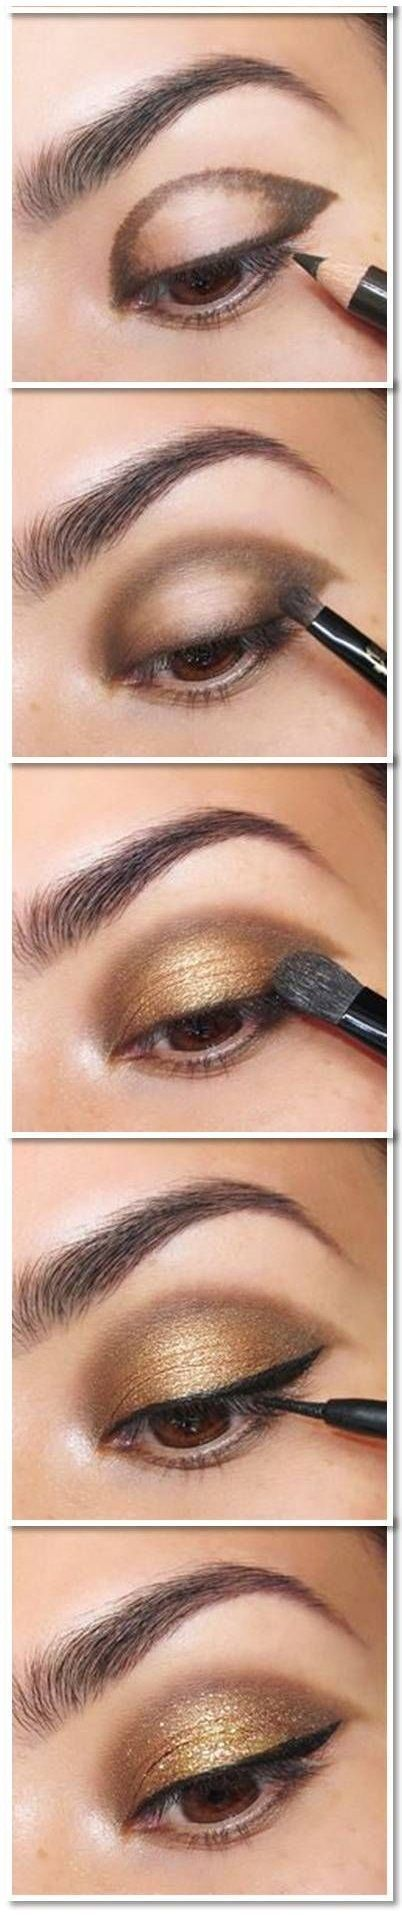 13 Of The Best Eyeshadow Tutorials For Brown Eyes - Makeup Tutorials